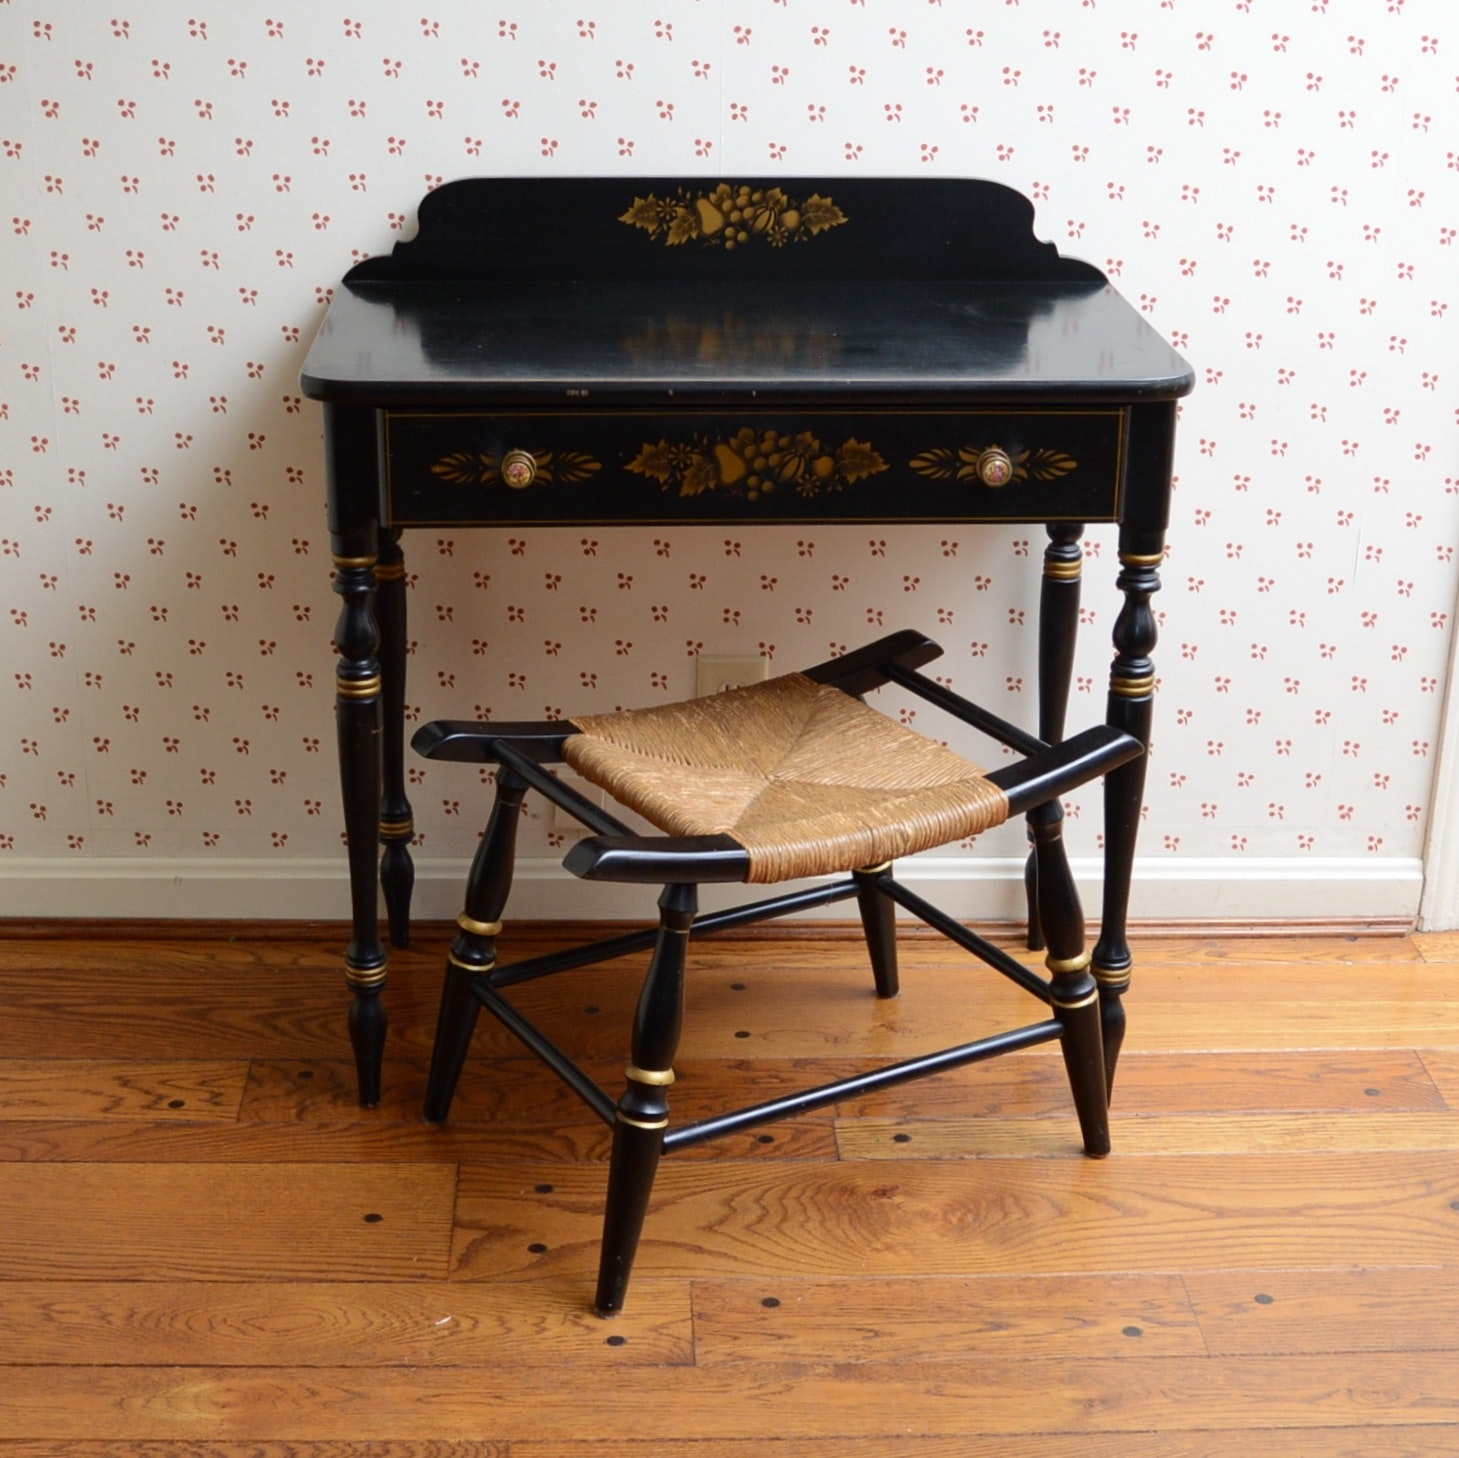 Vintage Hitchcock Style Writing Desk and Stool